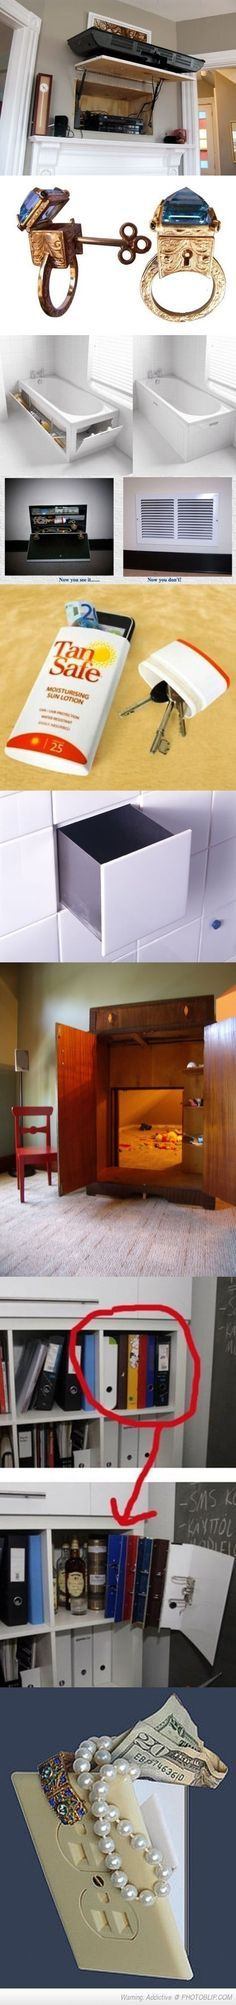 Awesome hiding places! TV GENIUS!!!! TUB GENIUS!!!!